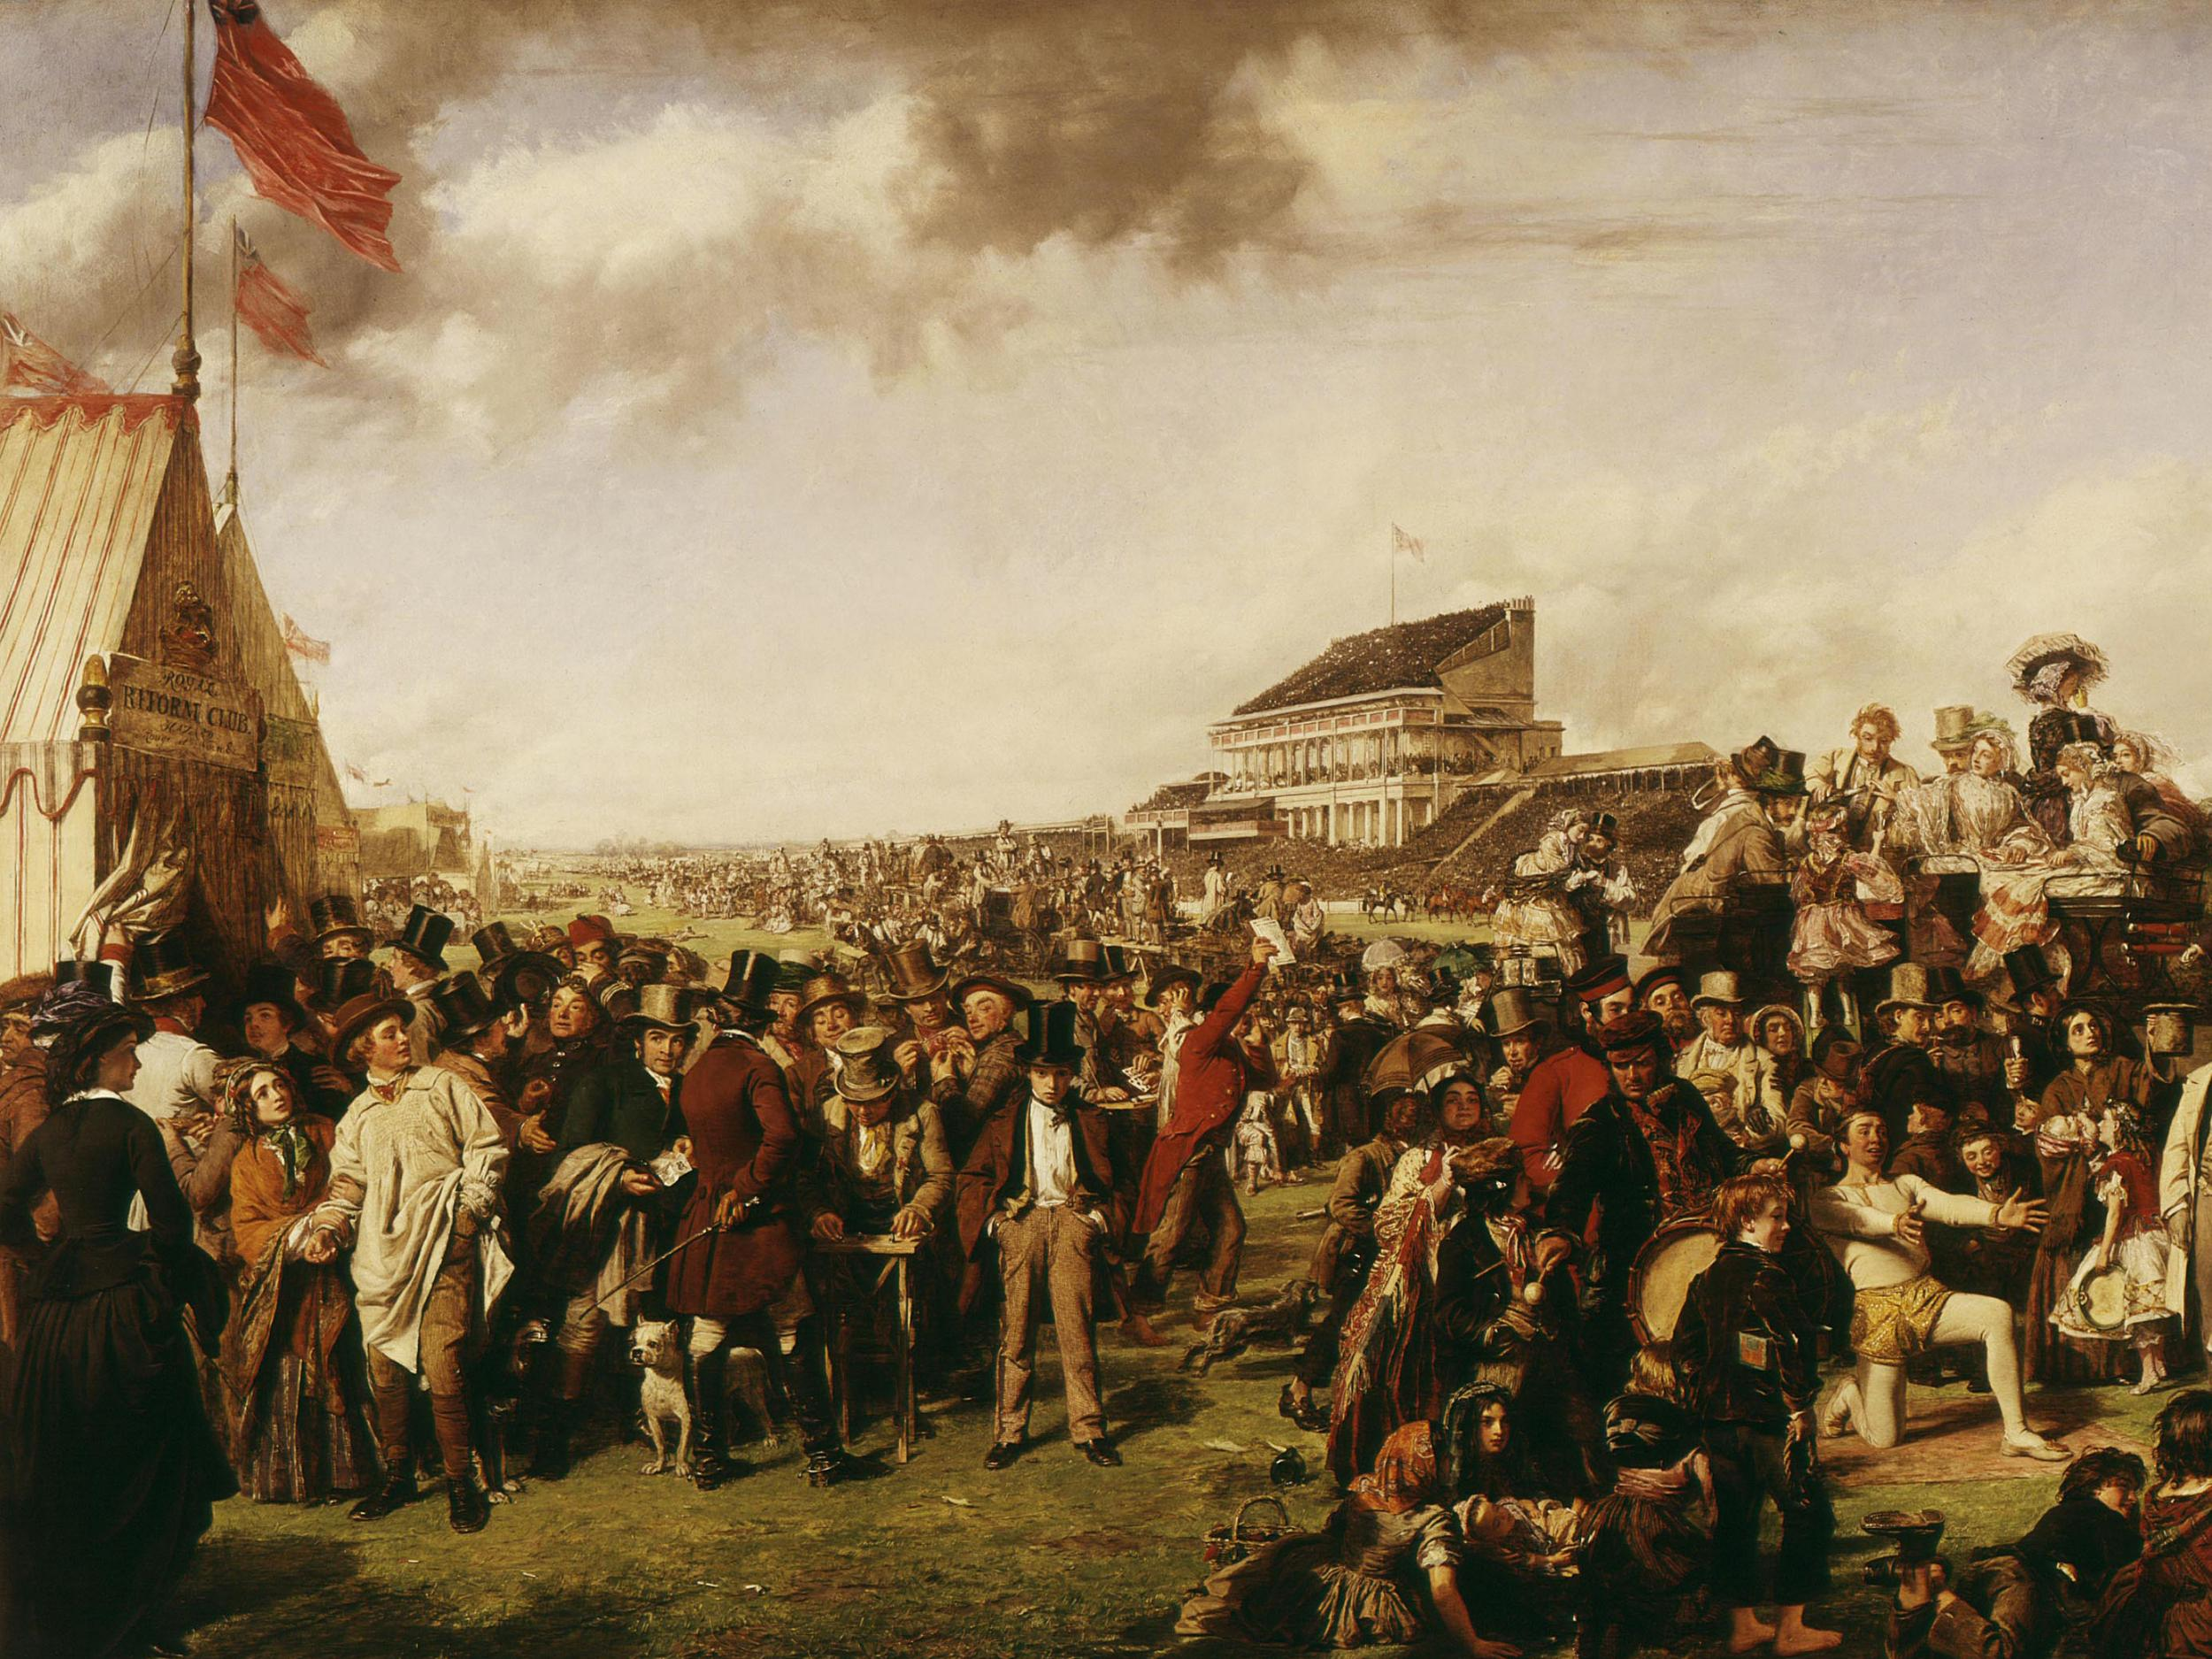 How William Powell Frith captured the spirit of the Epsom Derby